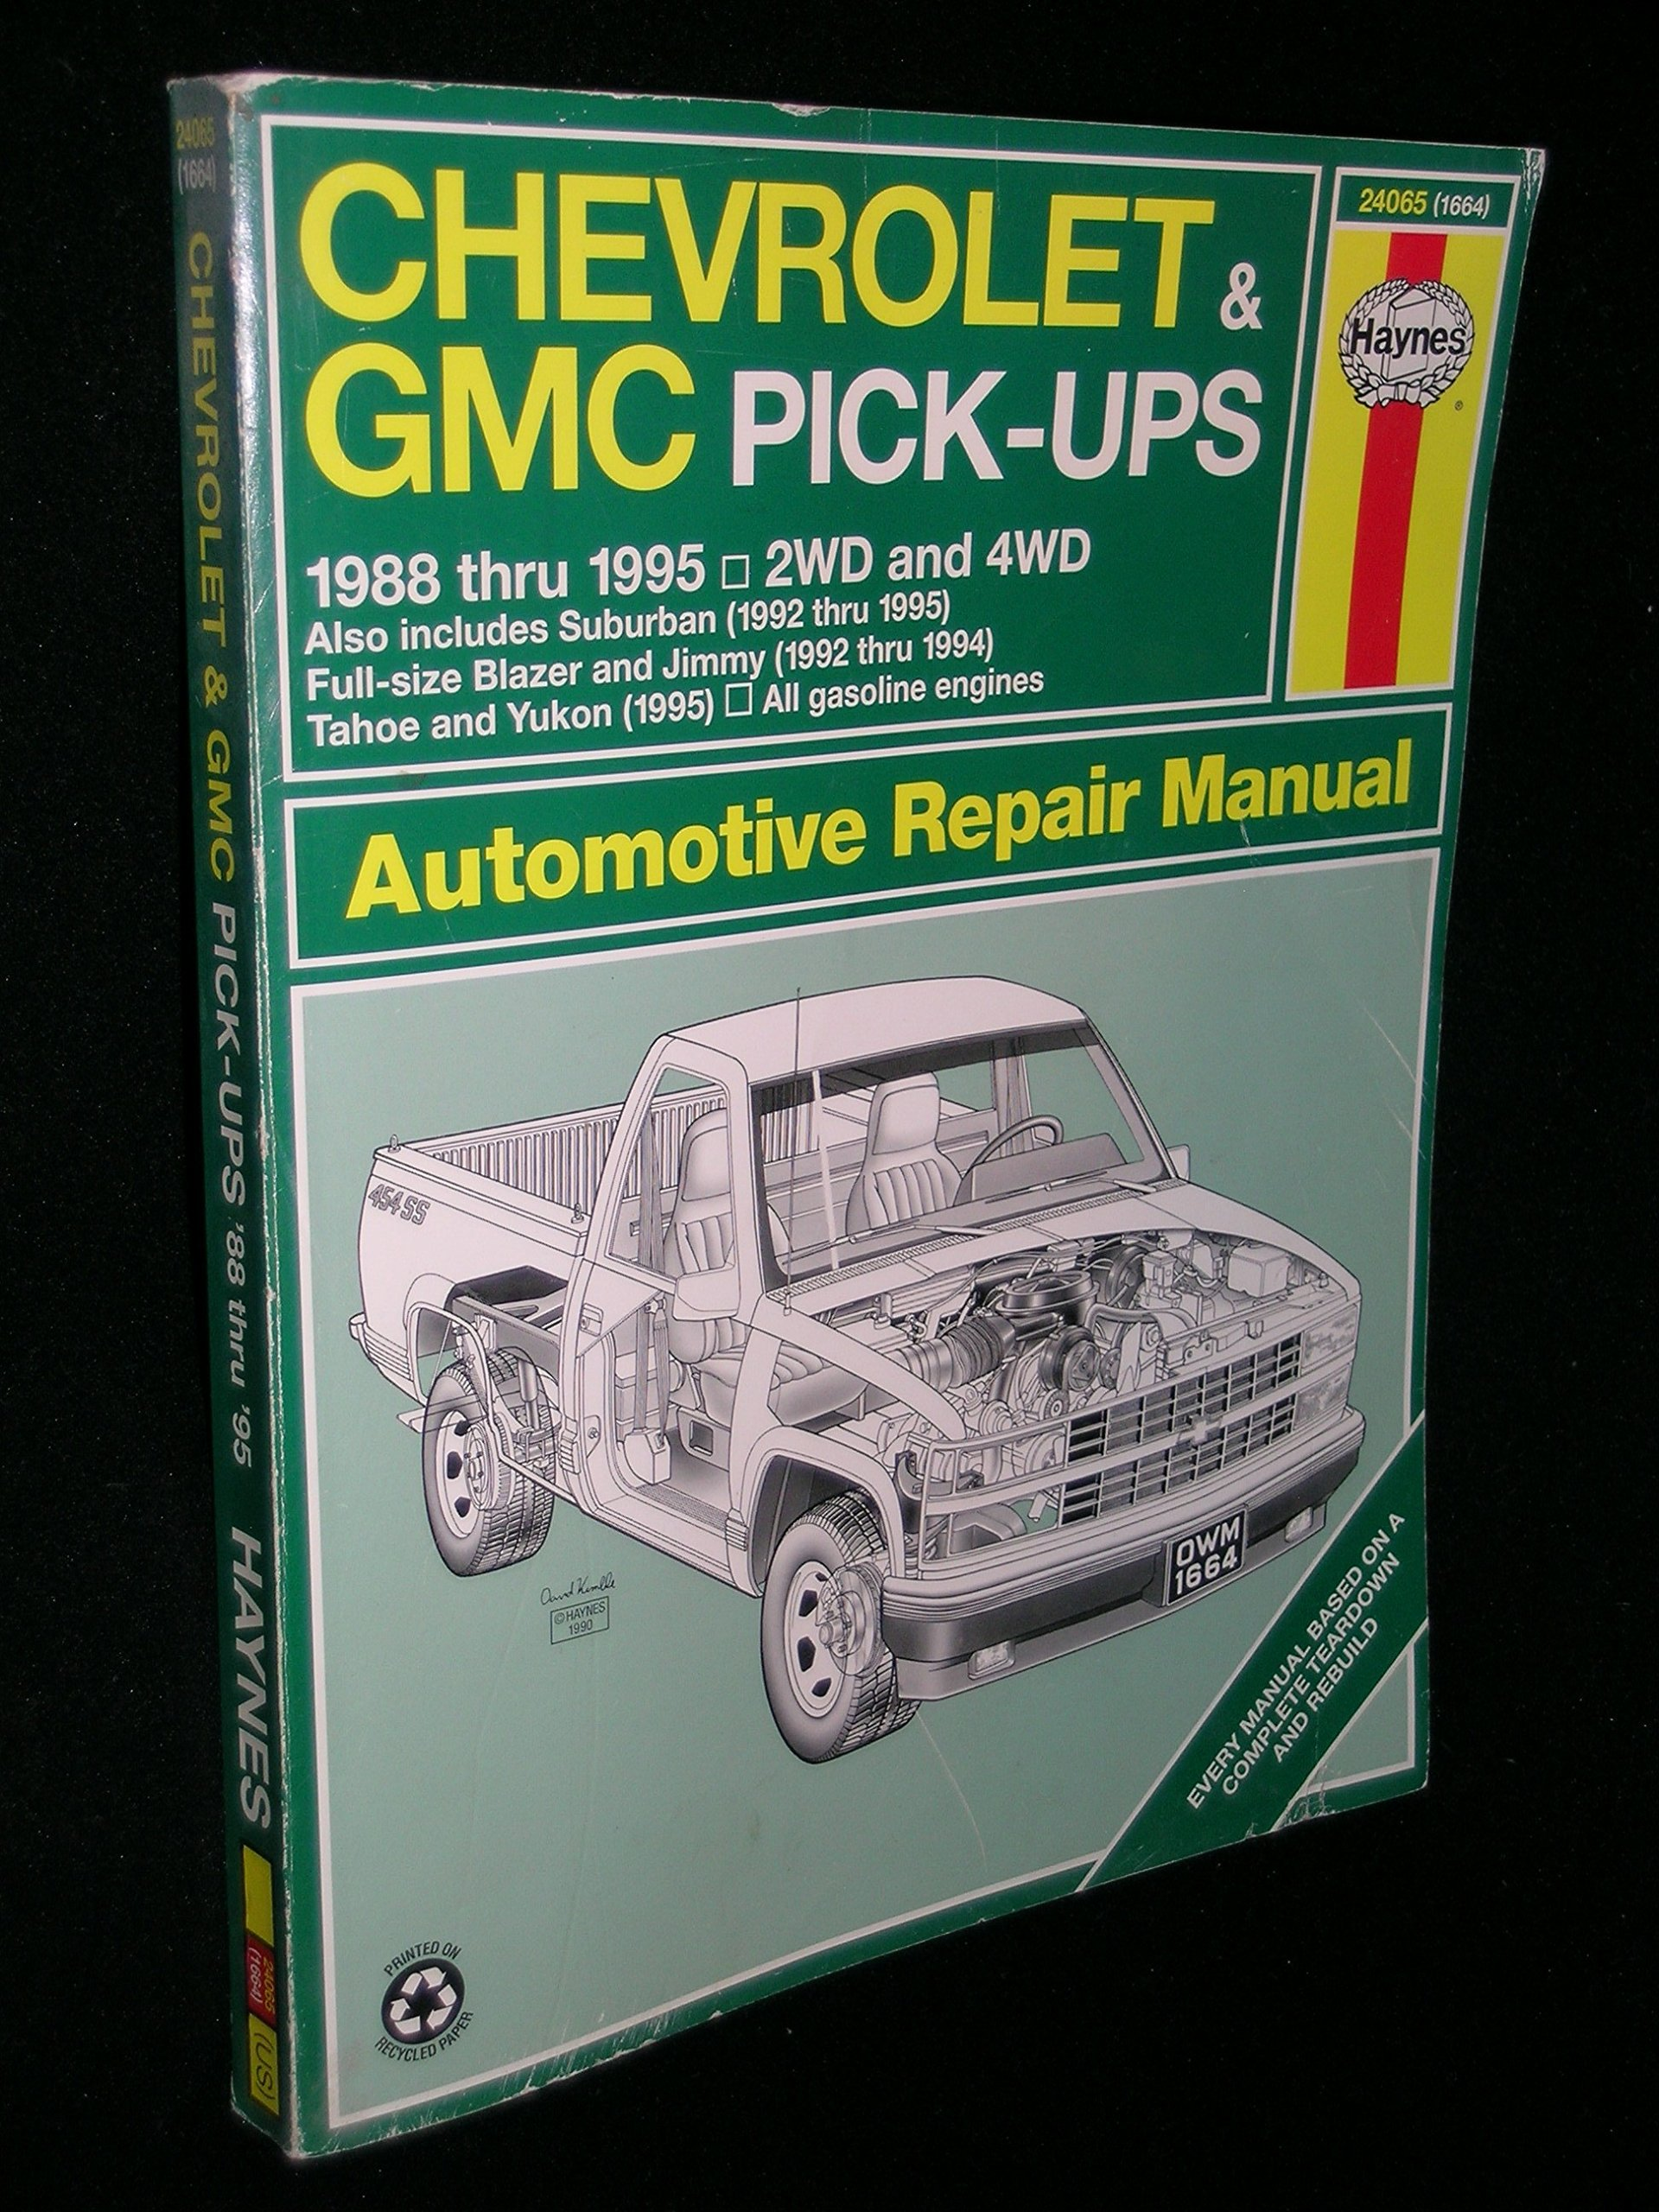 Chevrolet & GMC Pick-Ups 1988 Thru 1995 2 WD & 4WD: Suburban, (1992 thru  1995) Full-size Blazer and Jimmy (1992 thru 1994) Tahoe and Yukon (1995) ...